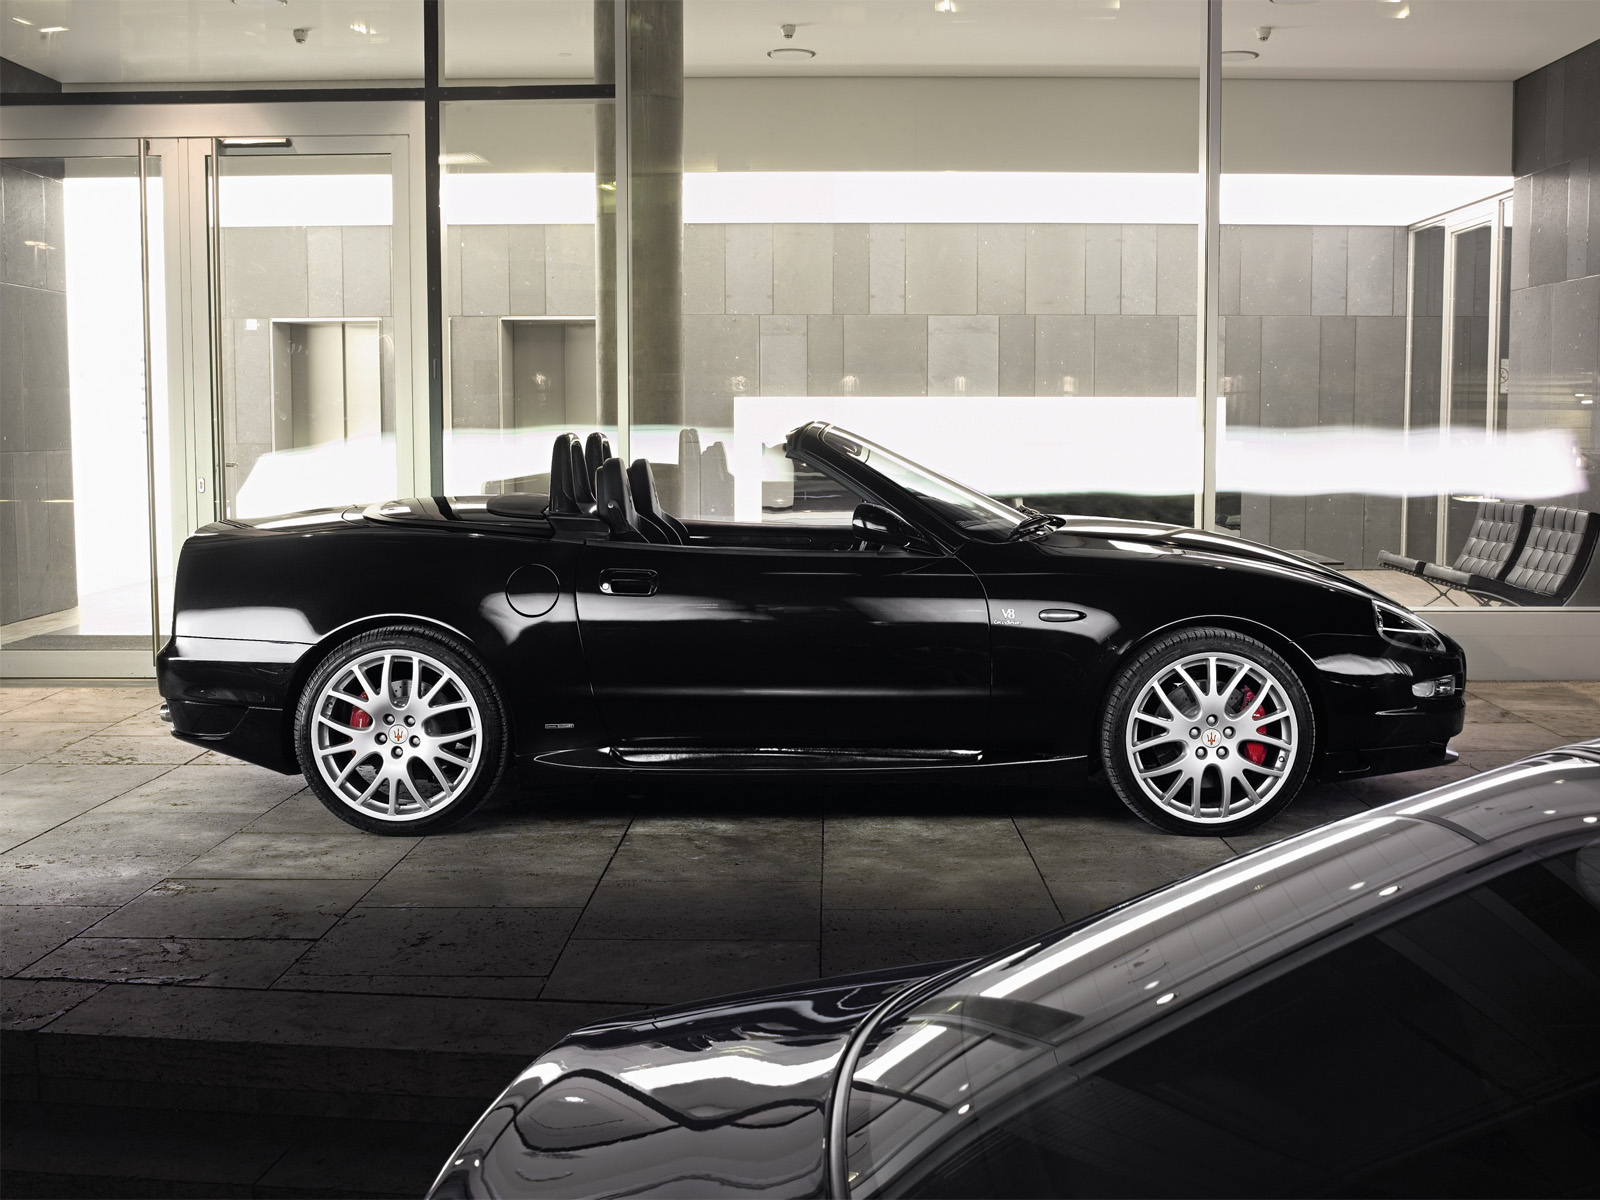 Car in pictures - car photo gallery » Maserati Gransport Spyder 2002-2007 Photo 02